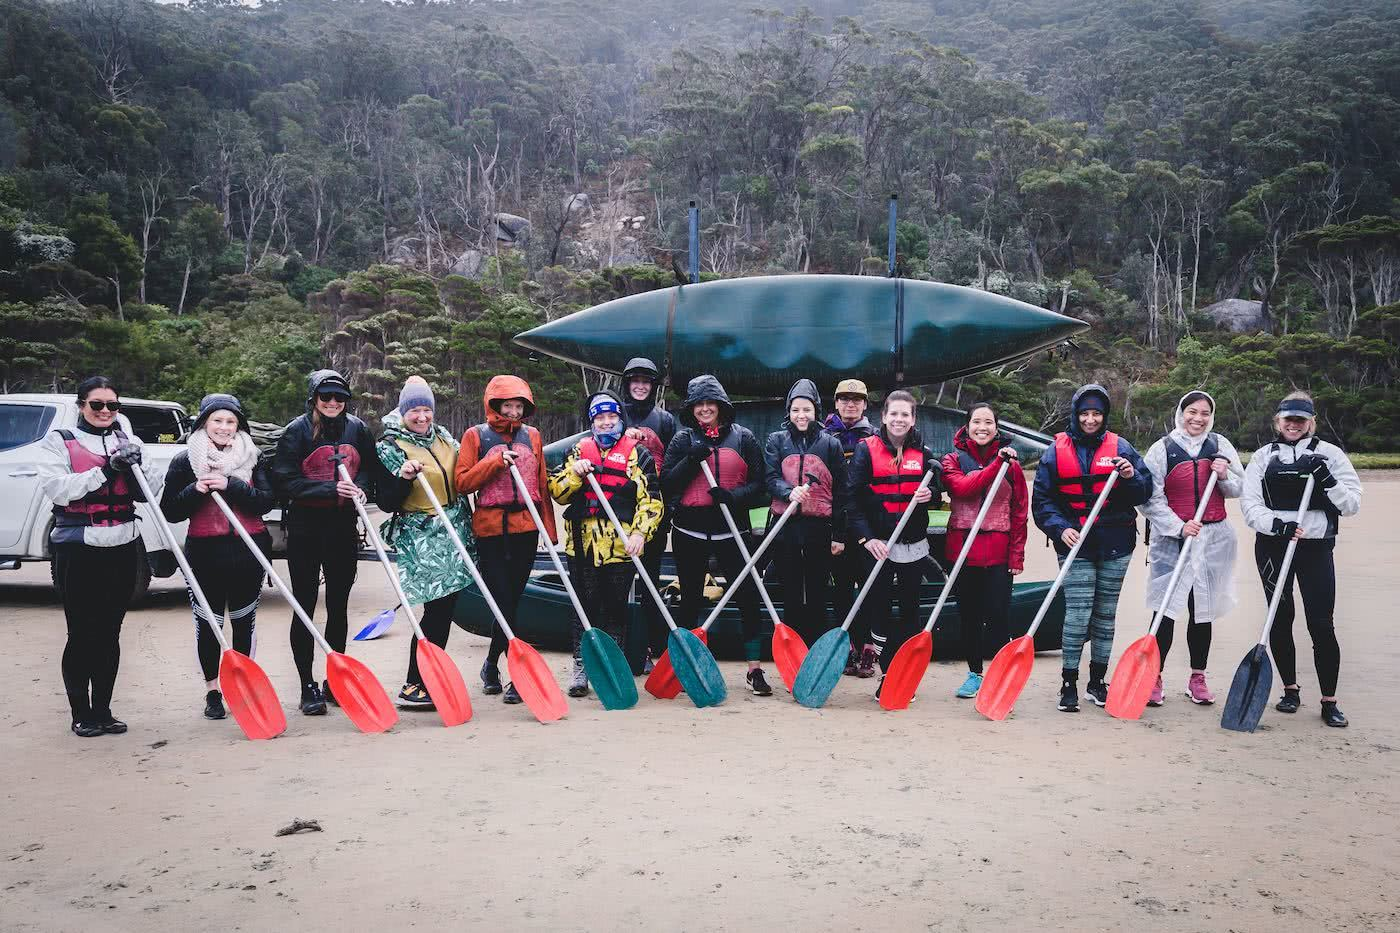 Why Do We Need Women Only Adventure Events?, photo by (), kayaks, paddles, group, women, rain, raincoats